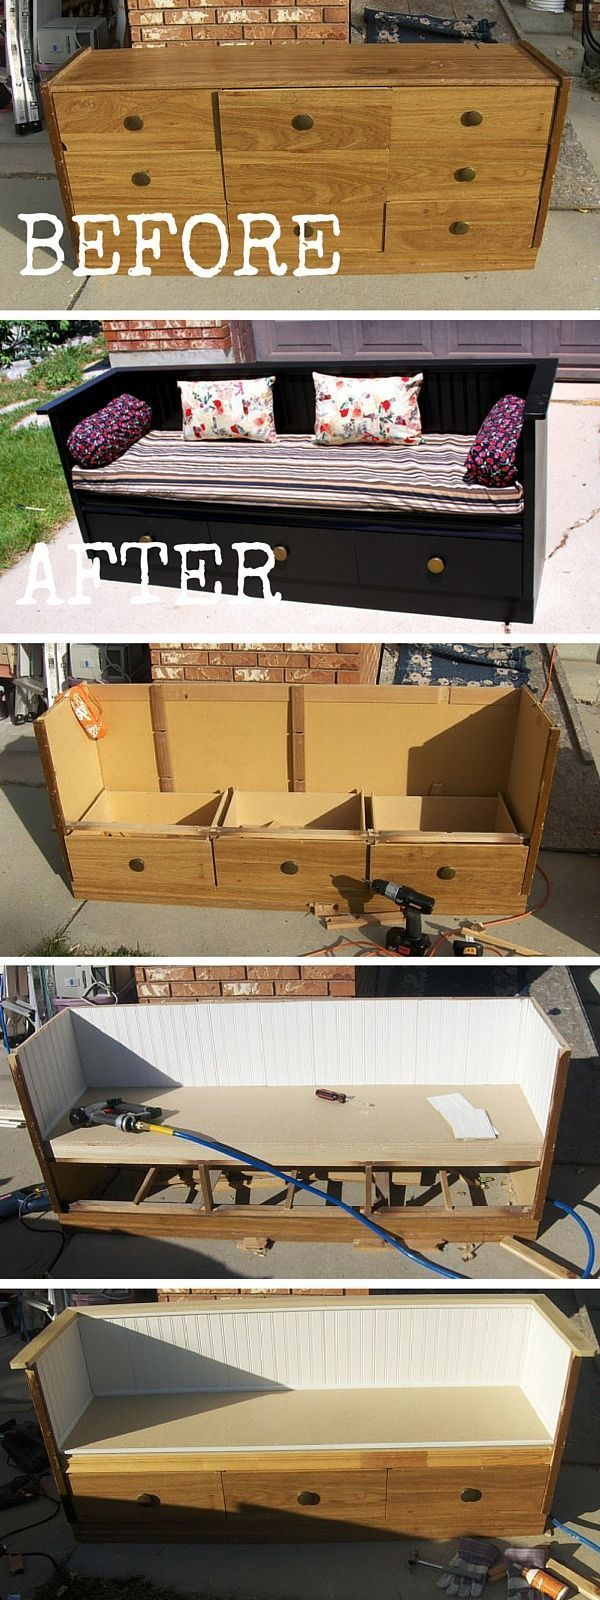 Try The Tutorial: #DIY An Outdated Dresser To A Bench Transformation #crafts…